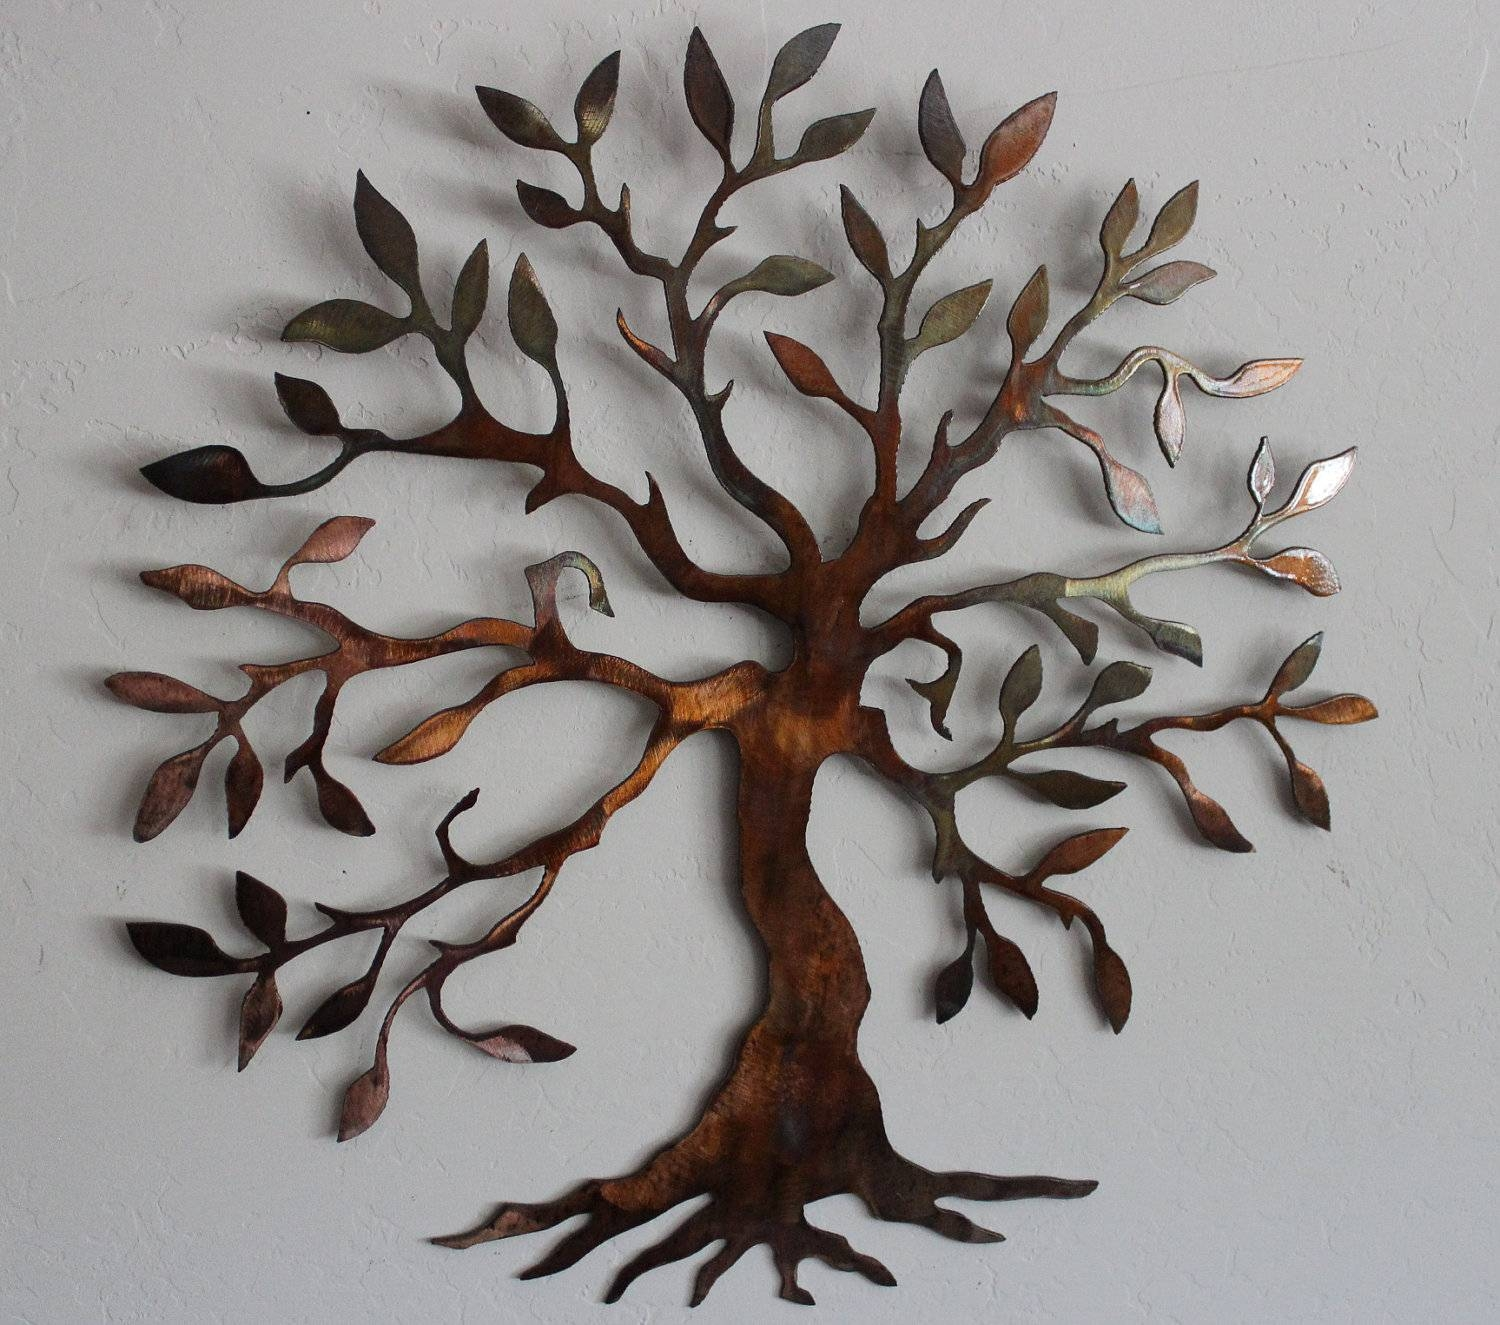 Charming Tree Metal Wall Art Decor Sculpture Design~ Popular Home Regarding Most Up To Date Metal Wall Art Decorating (View 2 of 20)